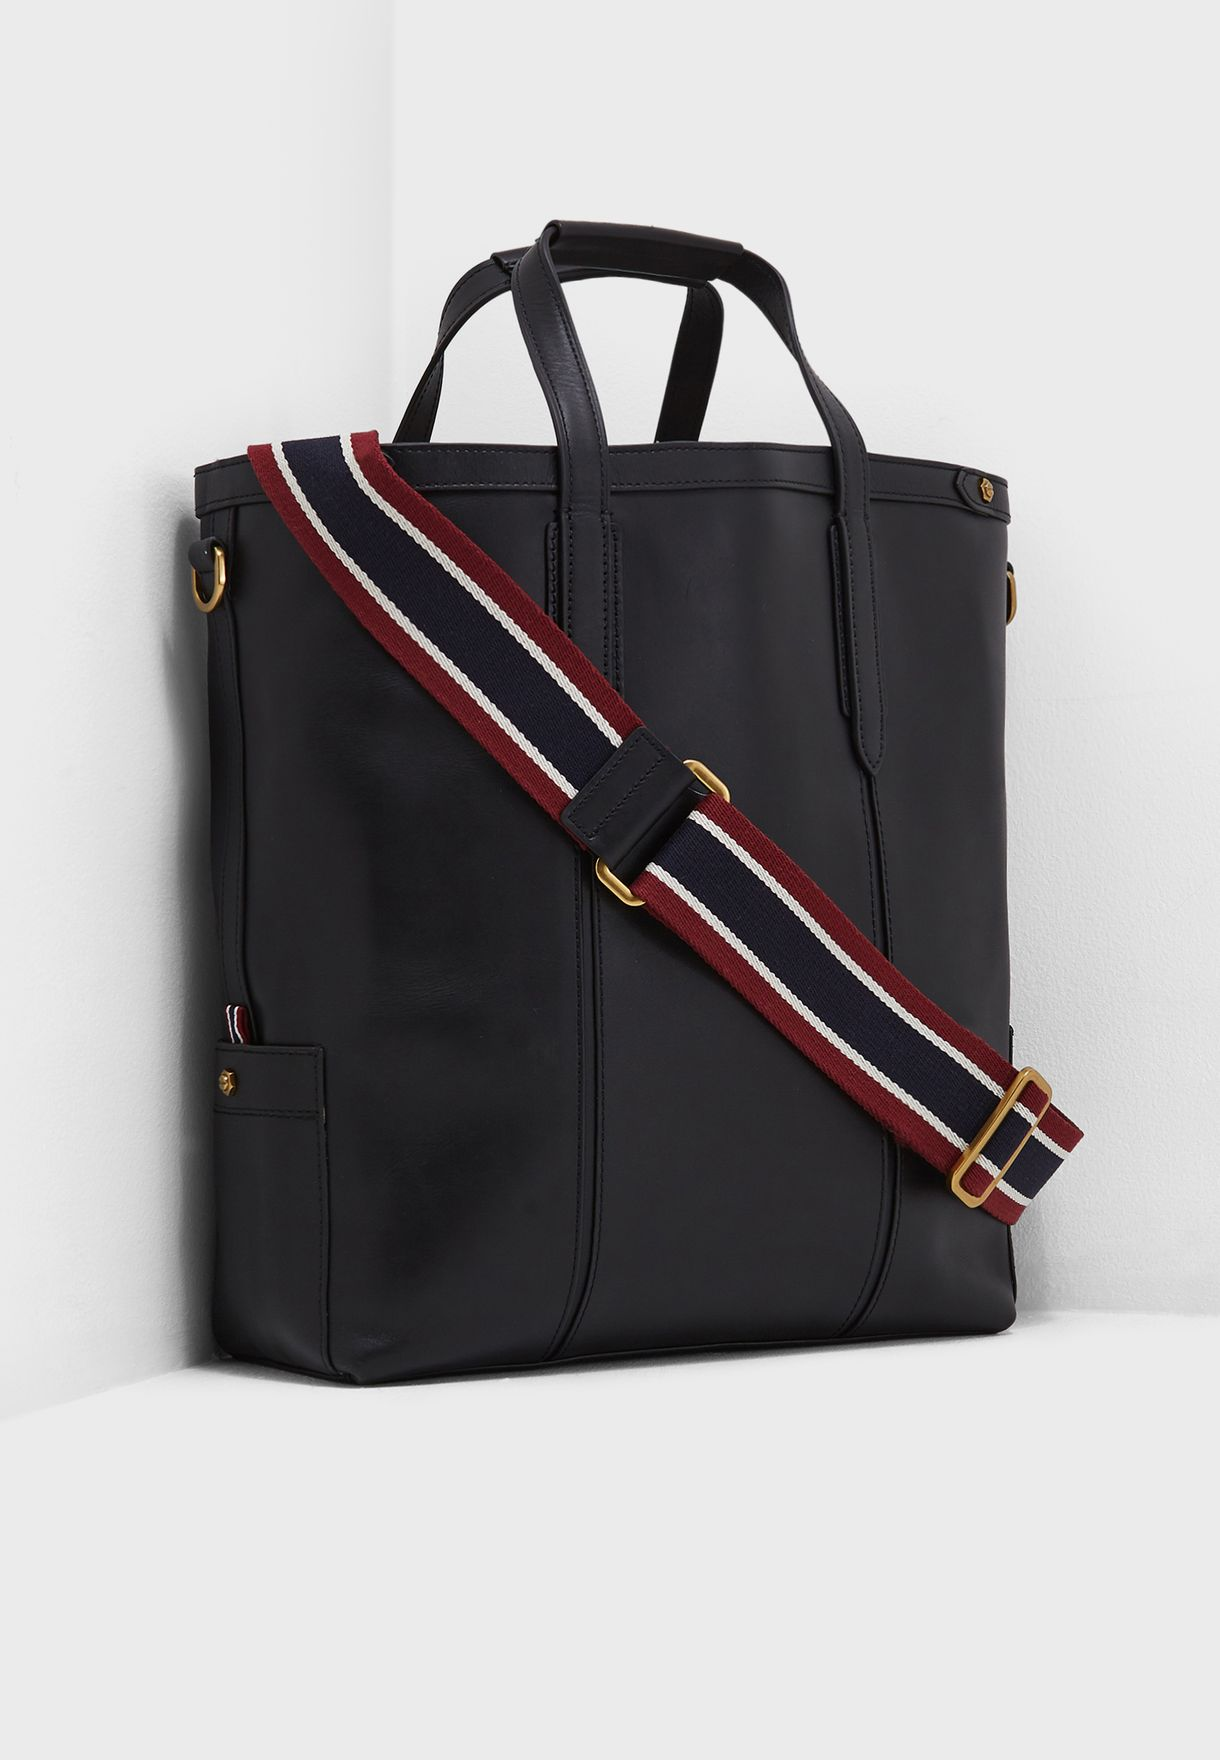 59093967a6 Shop J.Crew black Oar Stripe tote K0334 for Men in Globally ...